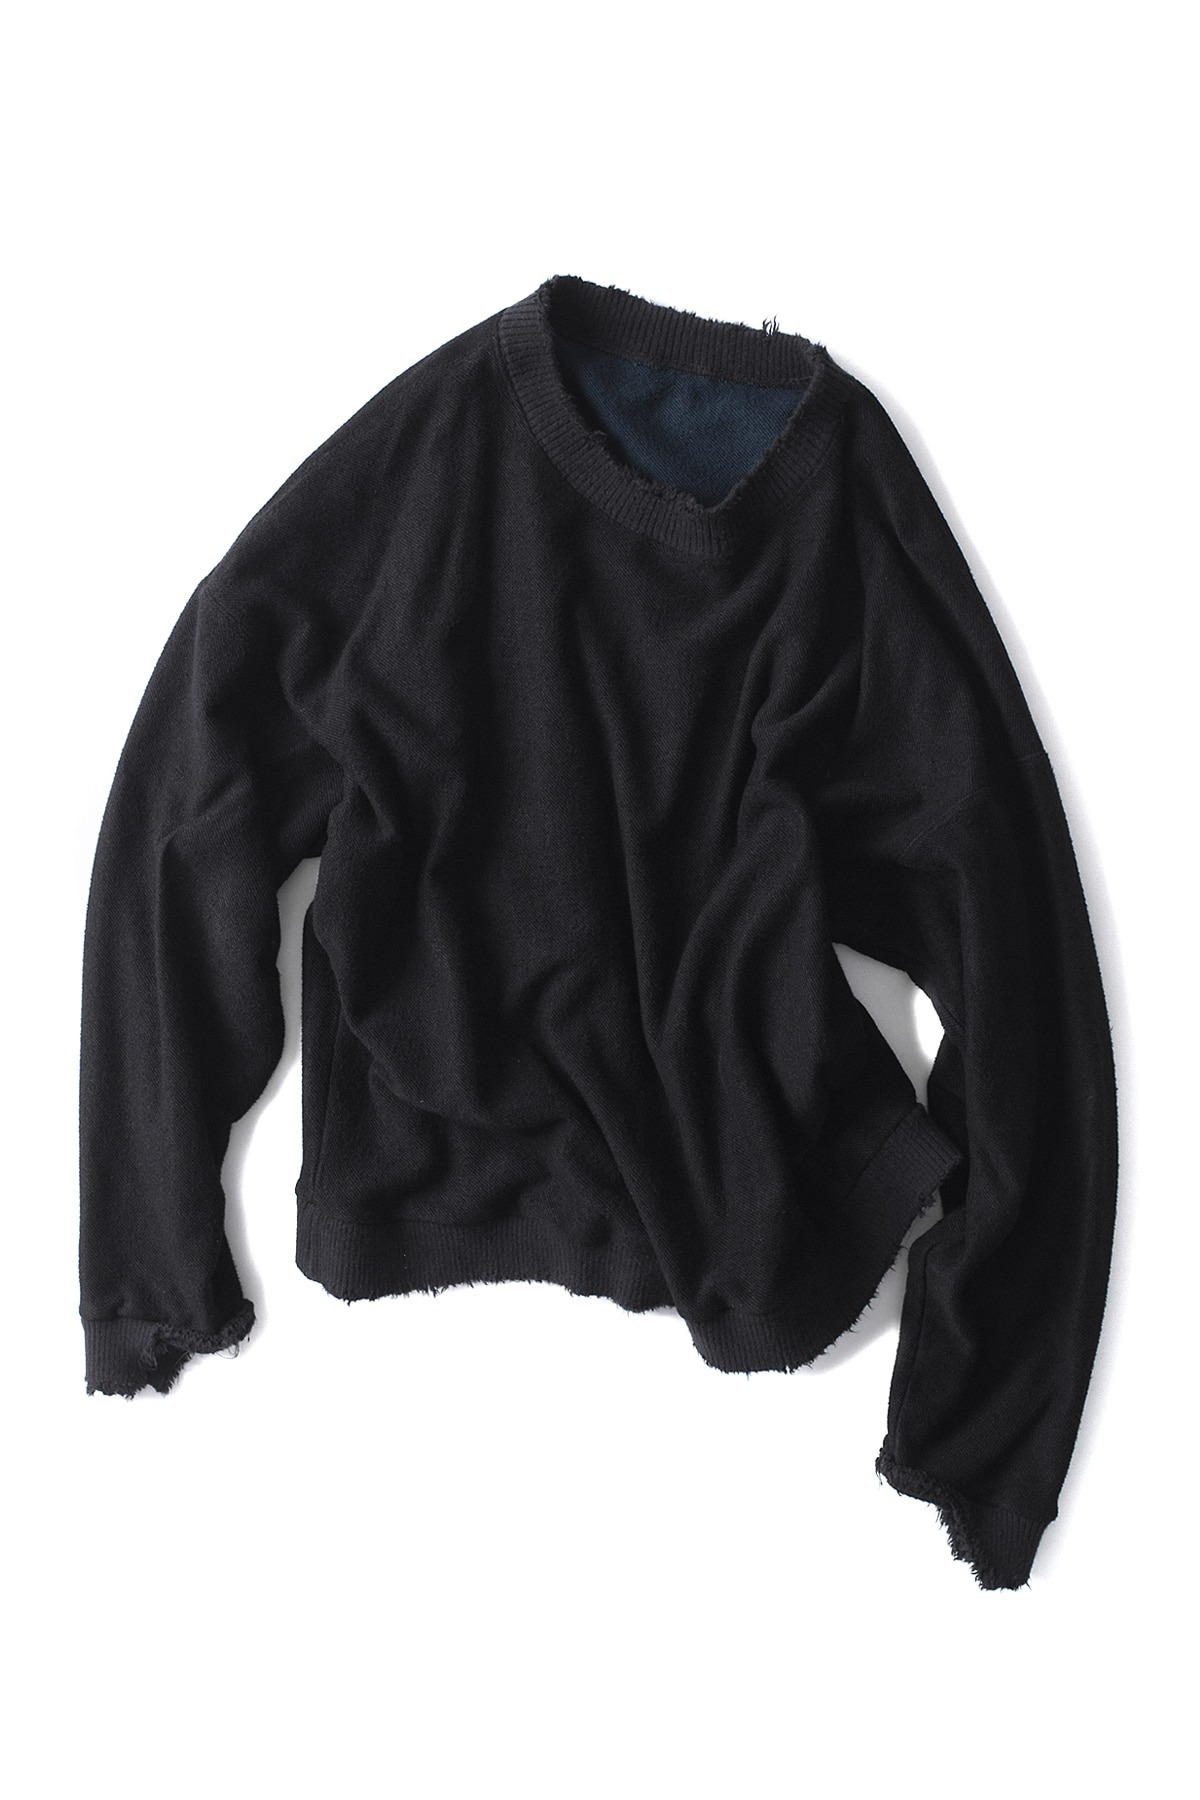 BIRTHDAYSUIT : Super Soft Reversible Pullover (Black)